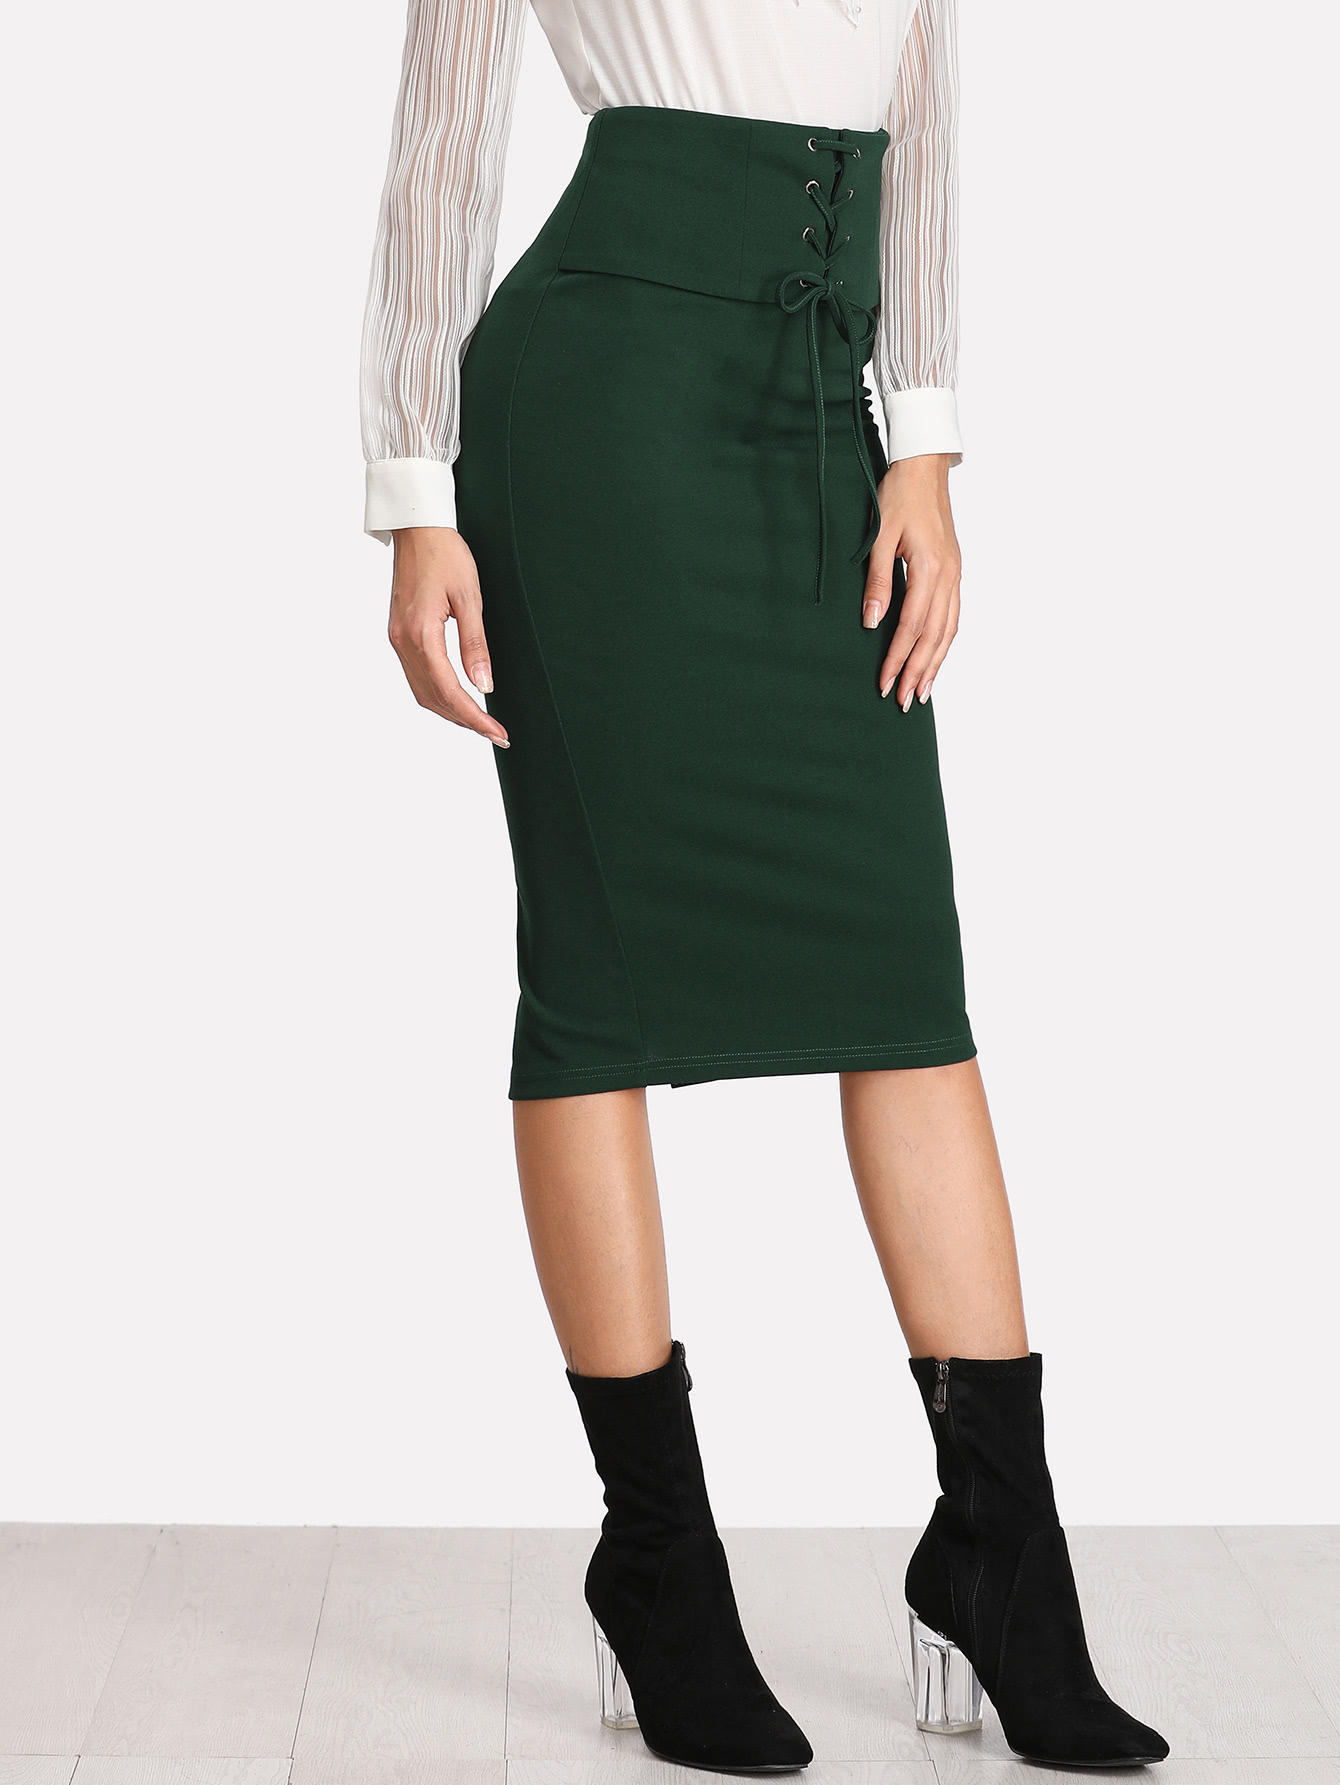 Grommet Lace Up Slit Back Pencil Skirt slit back pencil skirt with strap page 9